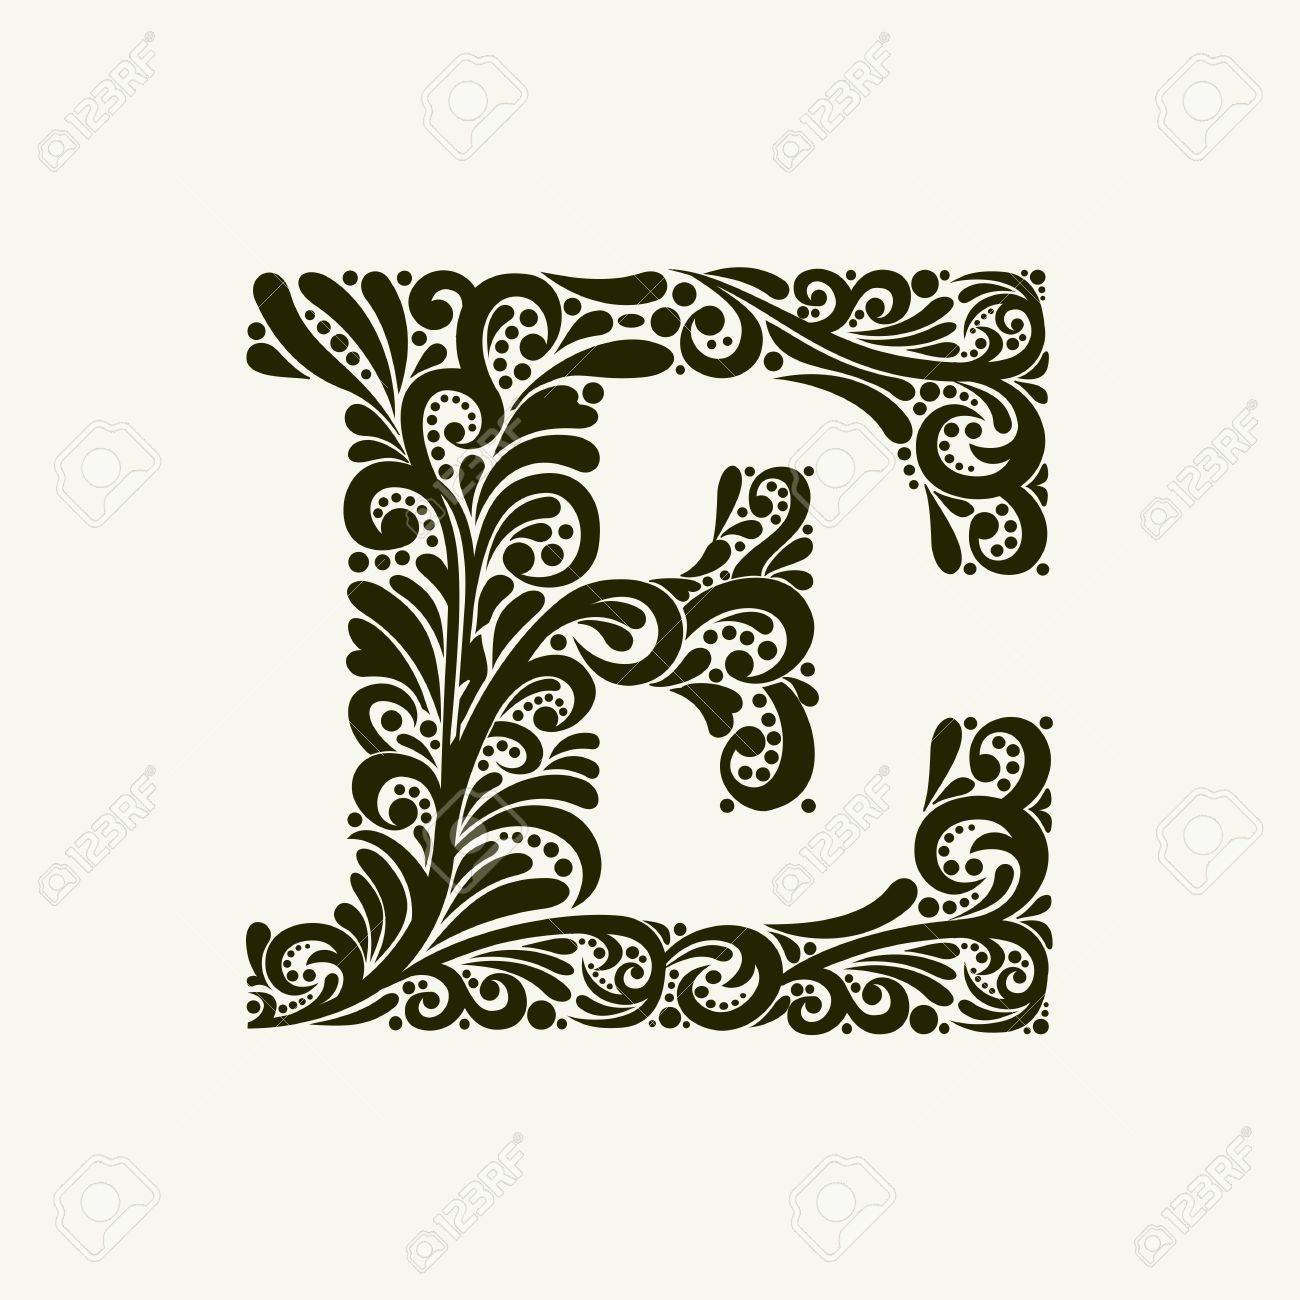 Elegant Capital Letter E In The Style Of The Baroque. To Use